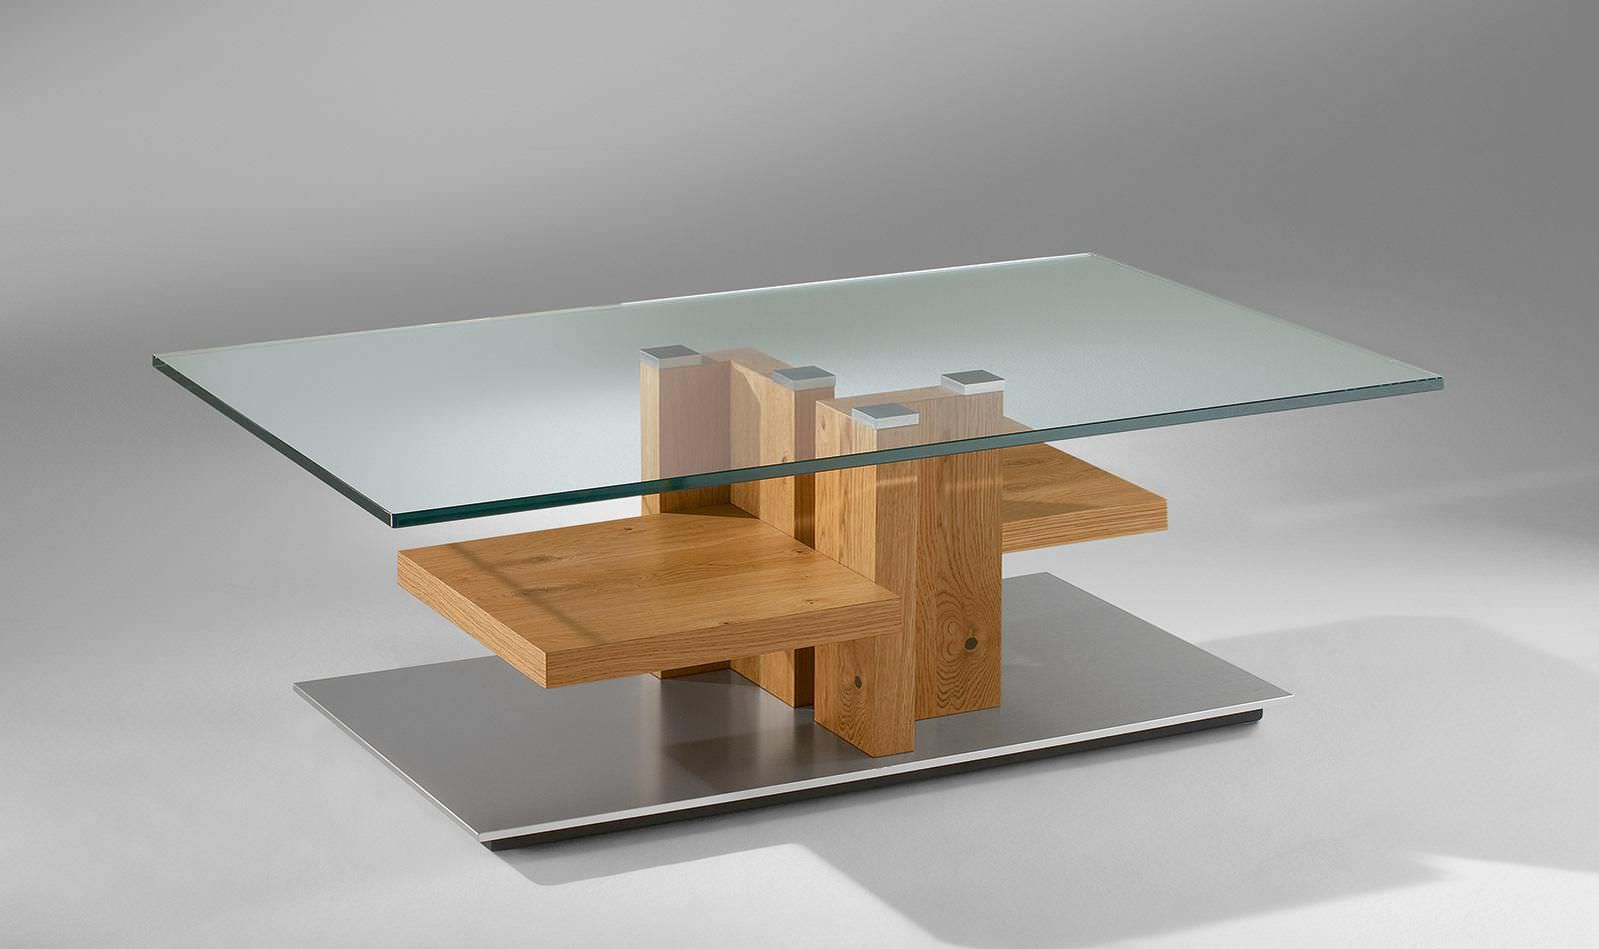 Couchtisch Modern Glas Holz 4424 Alfons Venjakob Gmbh